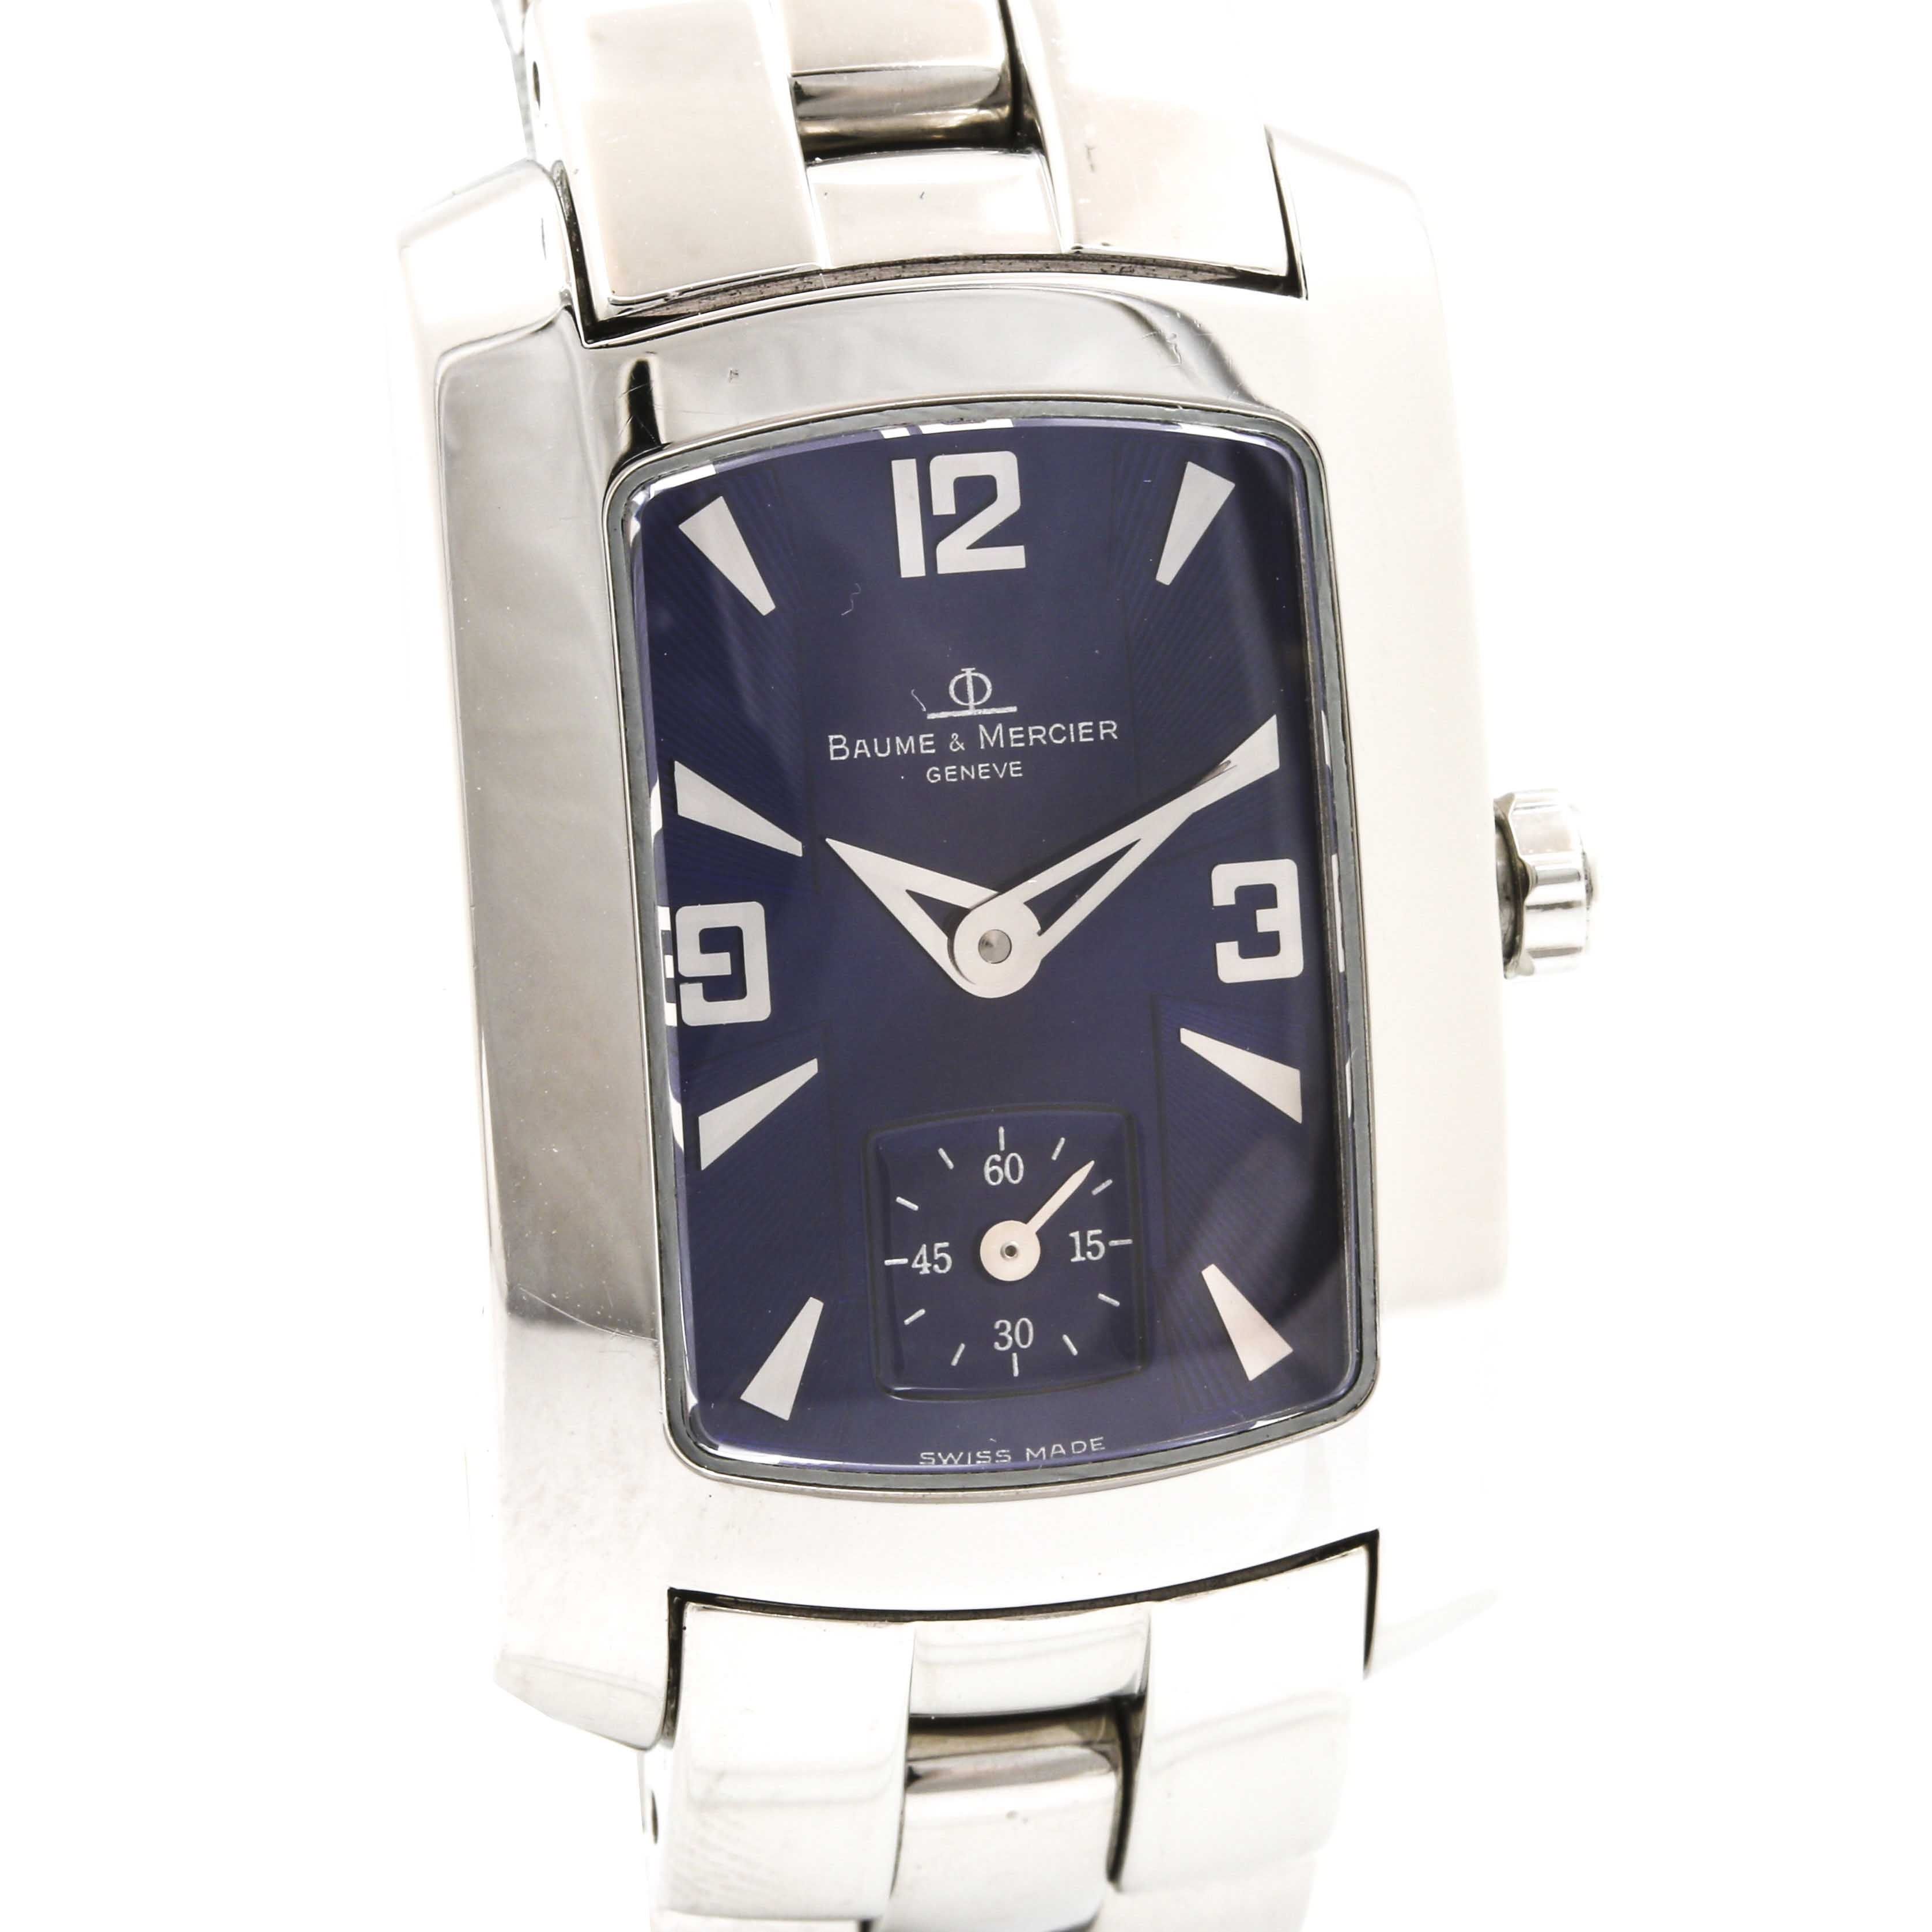 Baume and Mercier Geneve Analog Wristwatch